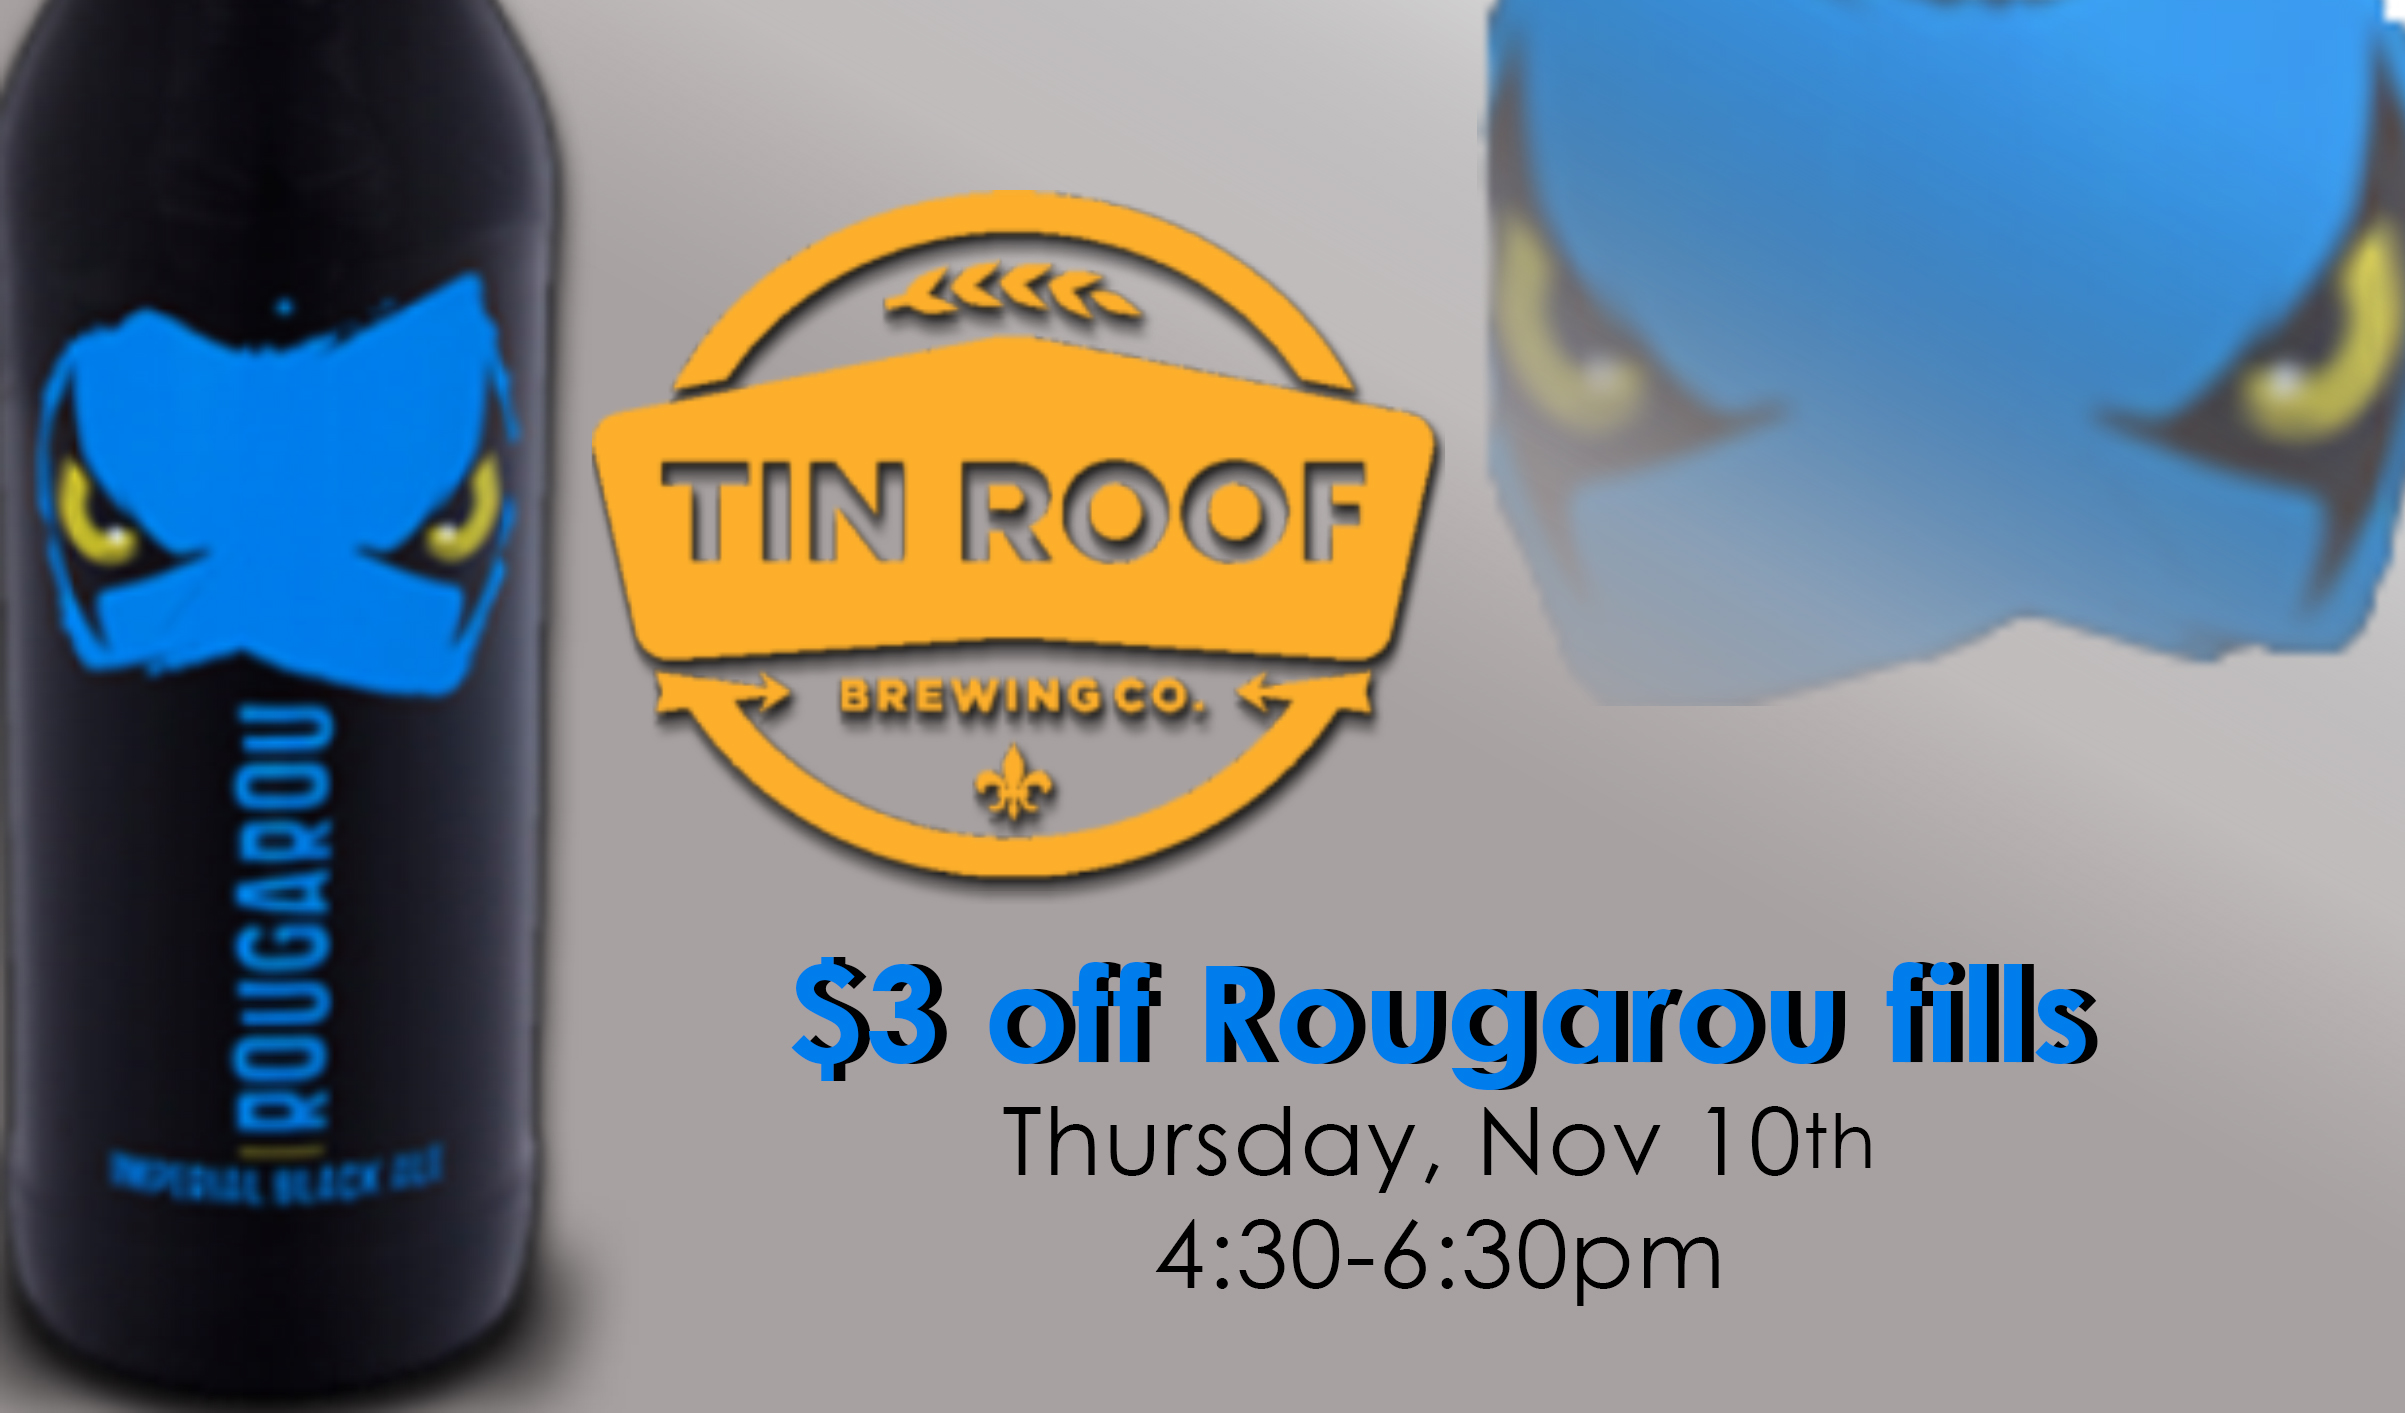 """Tin Roof is coming to dish out free samples of their seasonal """"Rougarou"""". Stories abound of the night-lurking, bayou-wandering creature of Cajun lore, the Rougarou, a shadow that haunts night walkers who venture into his realm. Like its namesake, this dark, malty beast of a brew will maul your palate with a vicious hop backbone, elusive roast undertones and an intense aroma.  STATS: Malts: Pale Ale, Pilsen, Munich, Melanoidin, Chocolate, Black  Hops: Magnum, Cascade, Centennial, Chinook, Glacier, Palisade, Citra, Amarillo  ABV: 9.7%  IBU's: 108"""